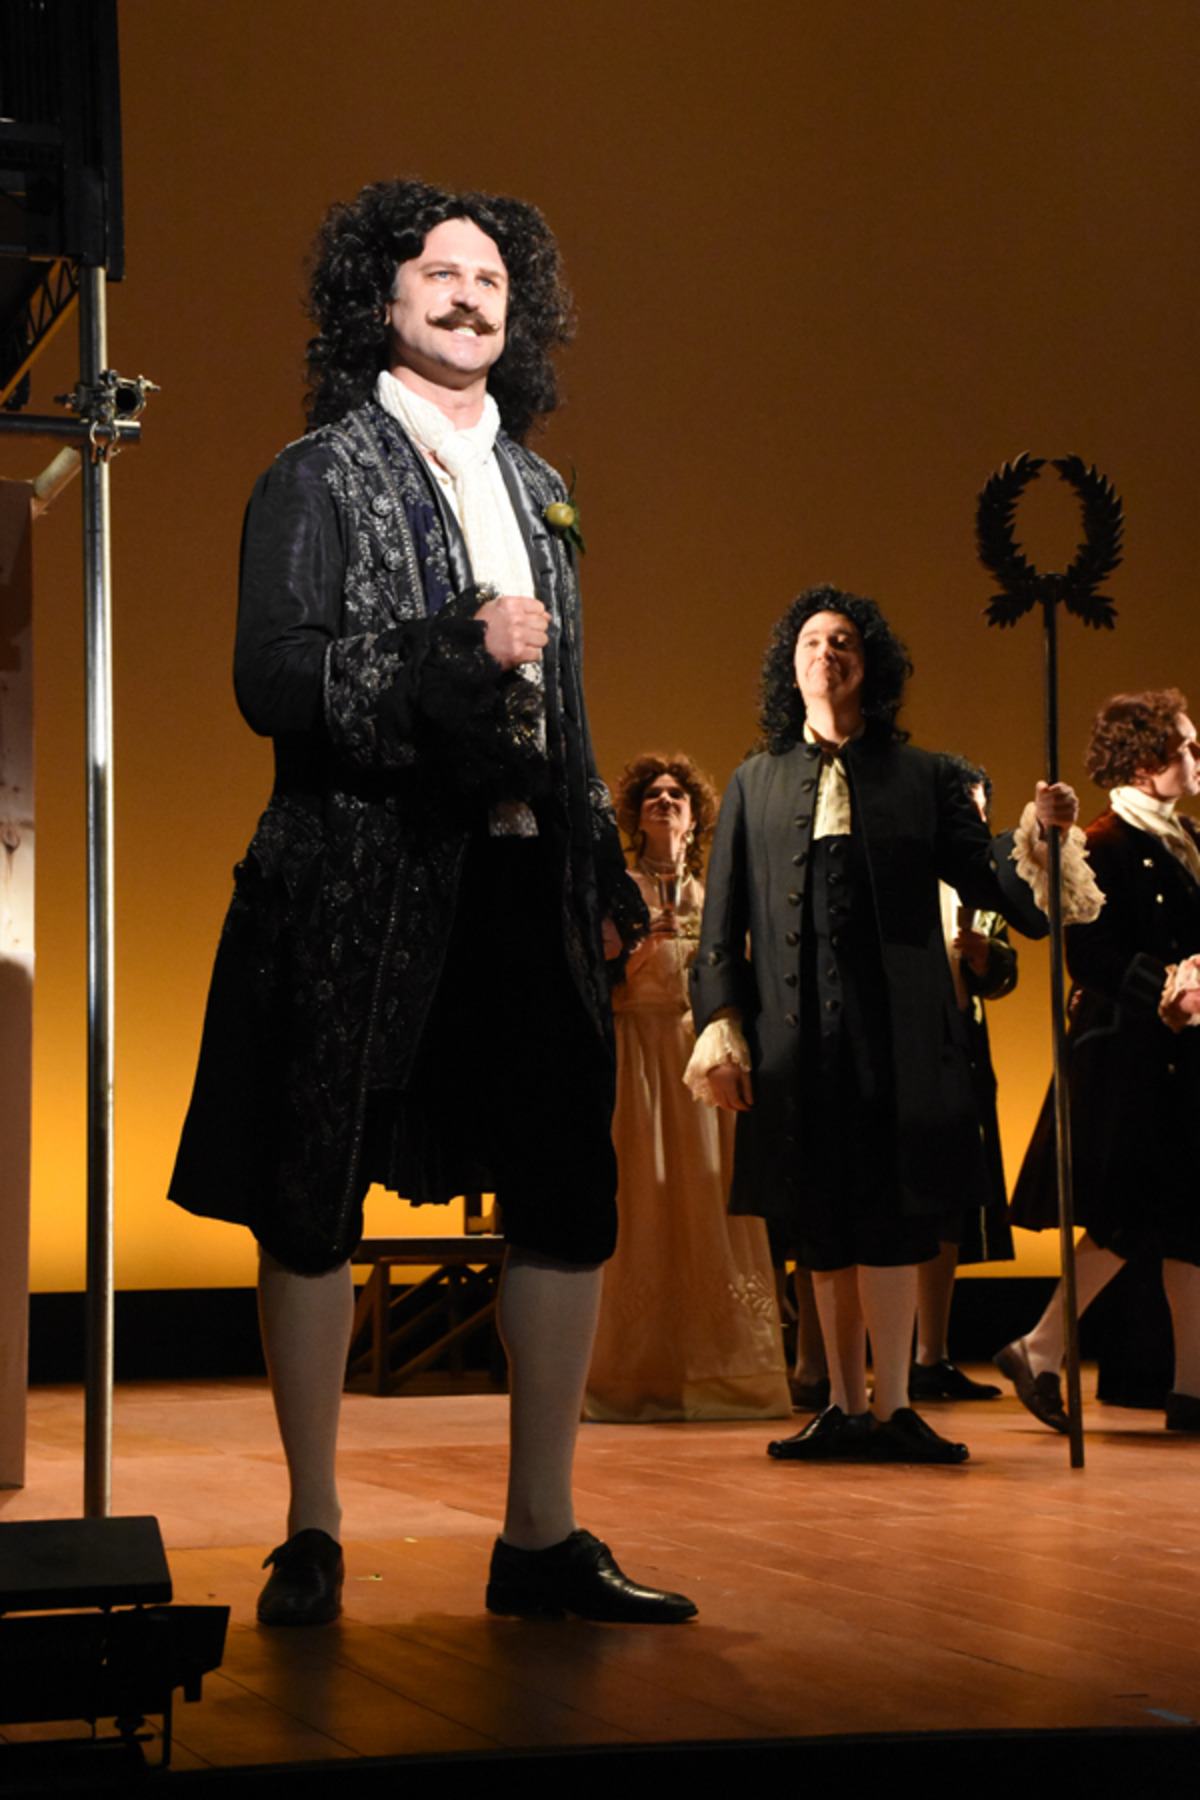 Charles II (M. Schreiner), with the court looking on - Photo credit Tina Buckman